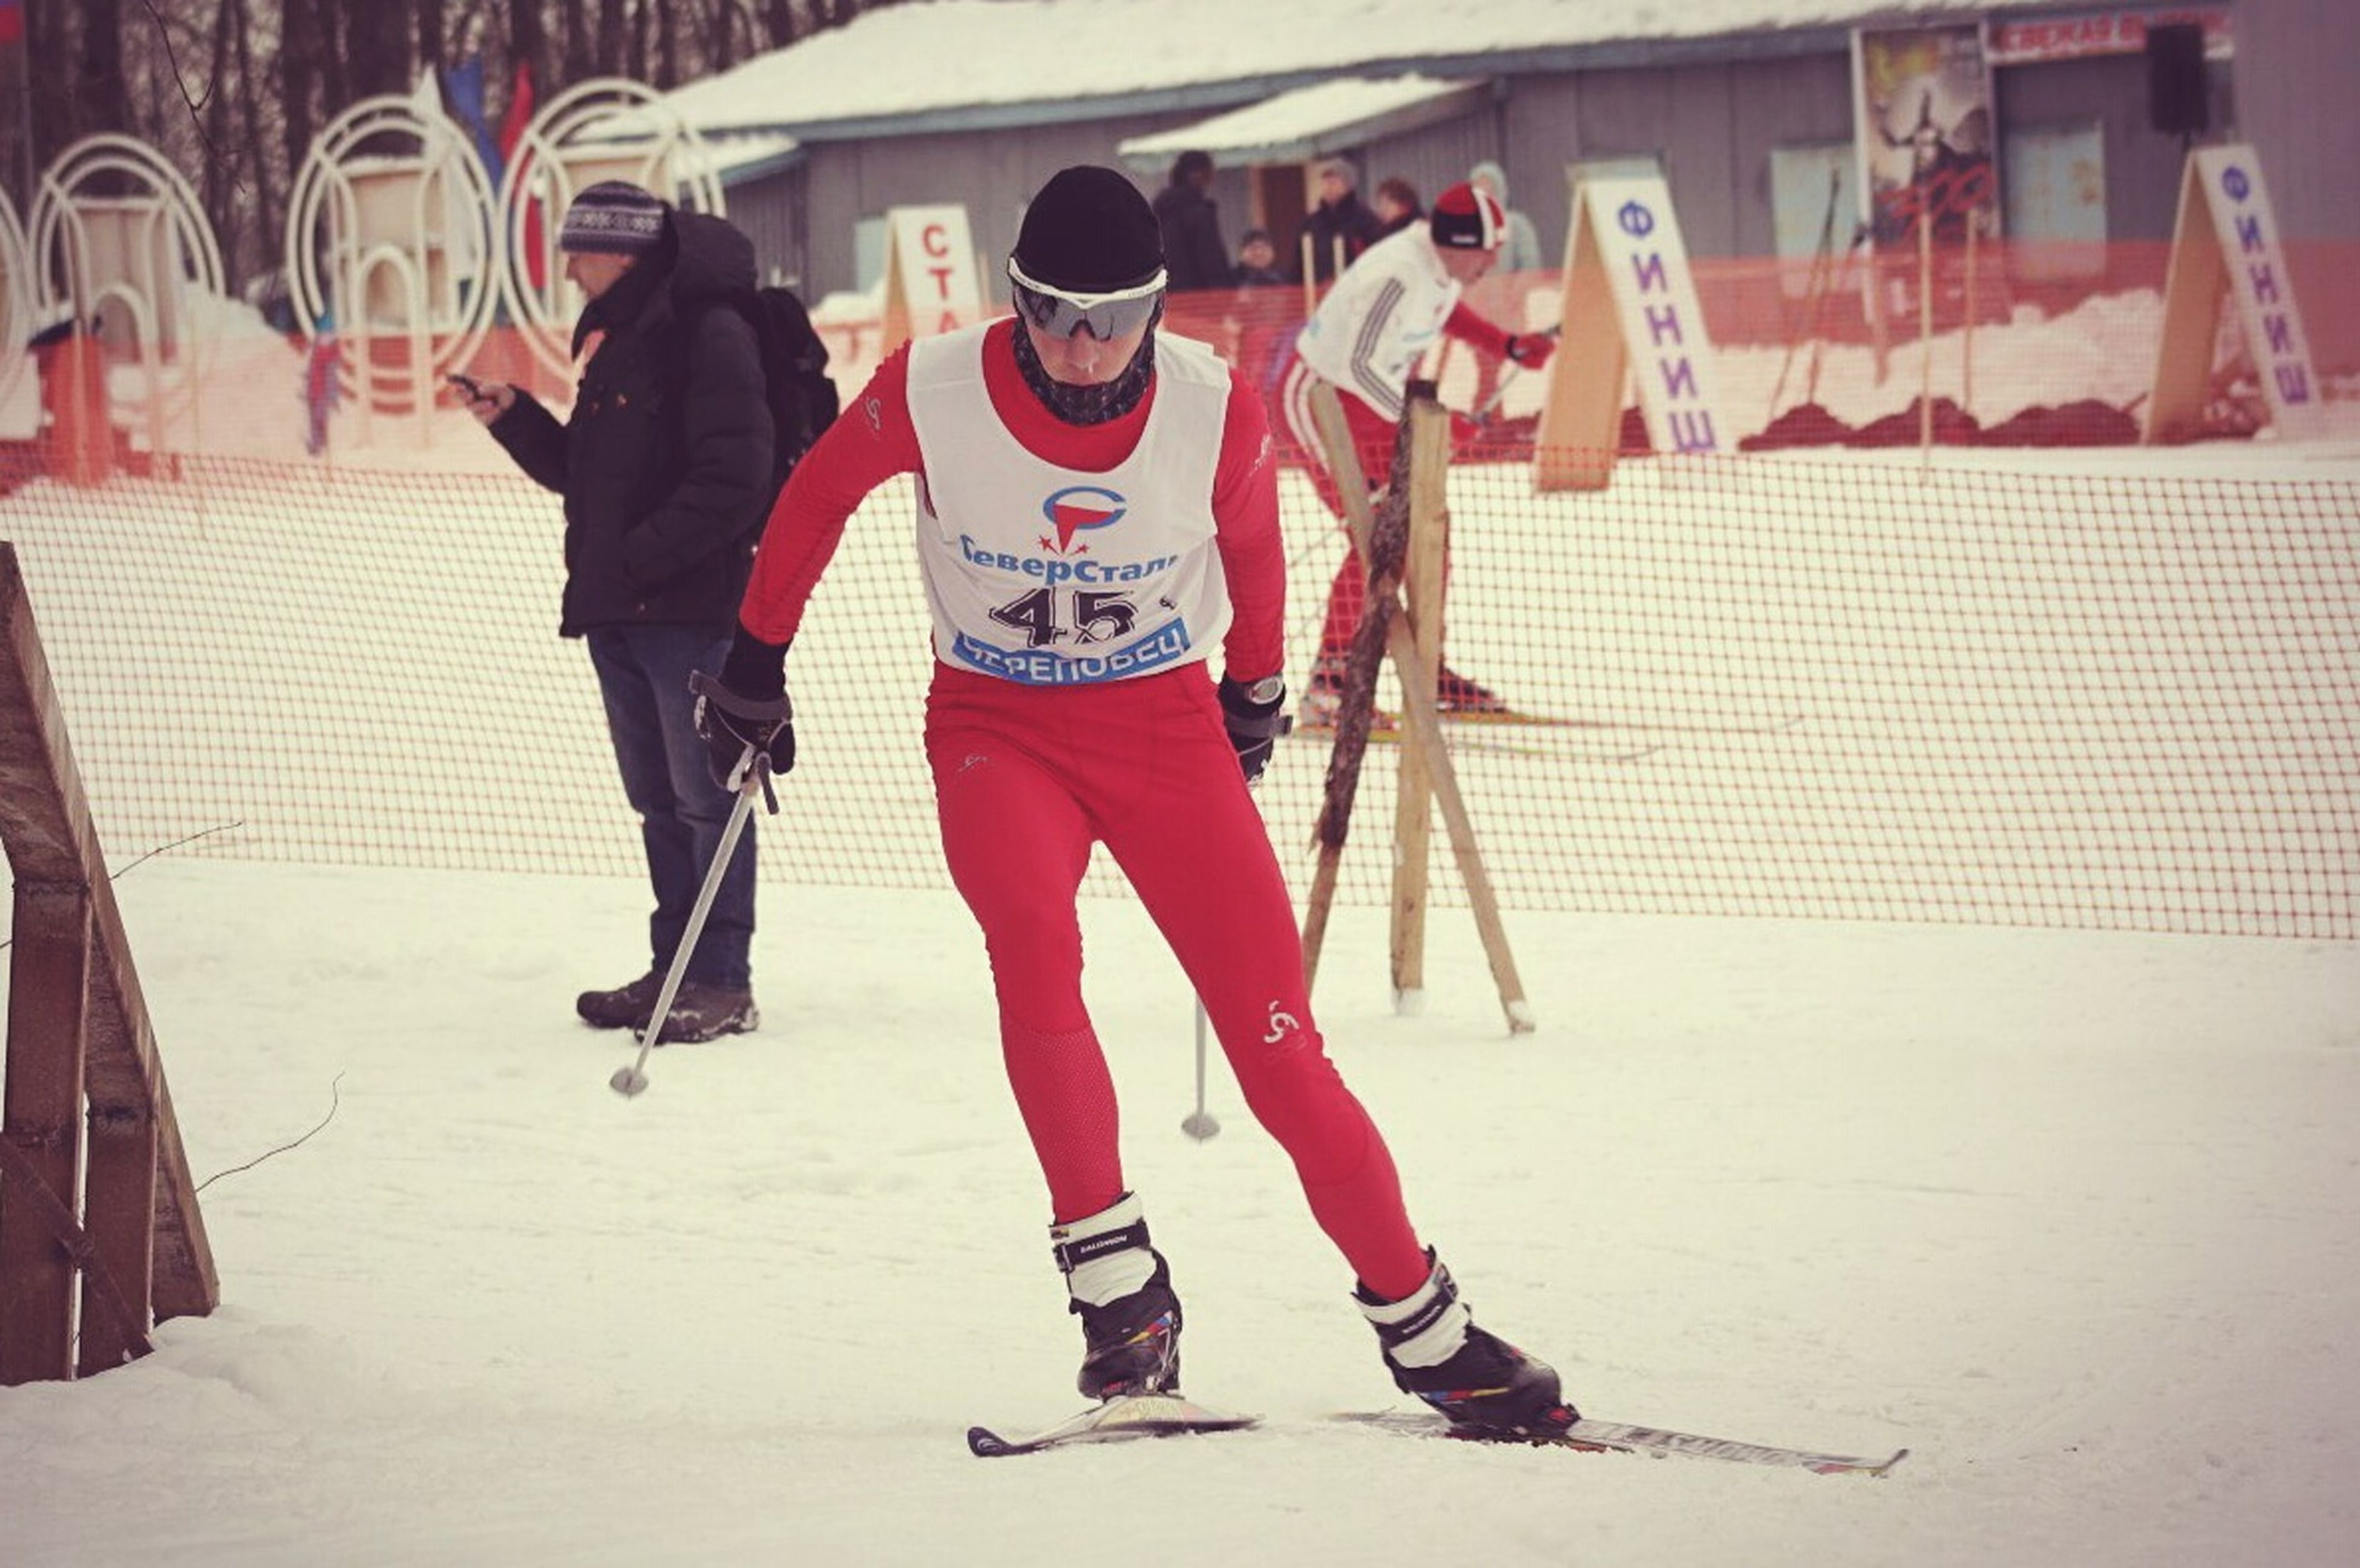 2013Snow Sports Sport Men People Outdoors Scirace Capture The Moment EyeEm Best Shots Winter Enjoy The New Normal The Photojournalist - 2017 EyeEm Awards